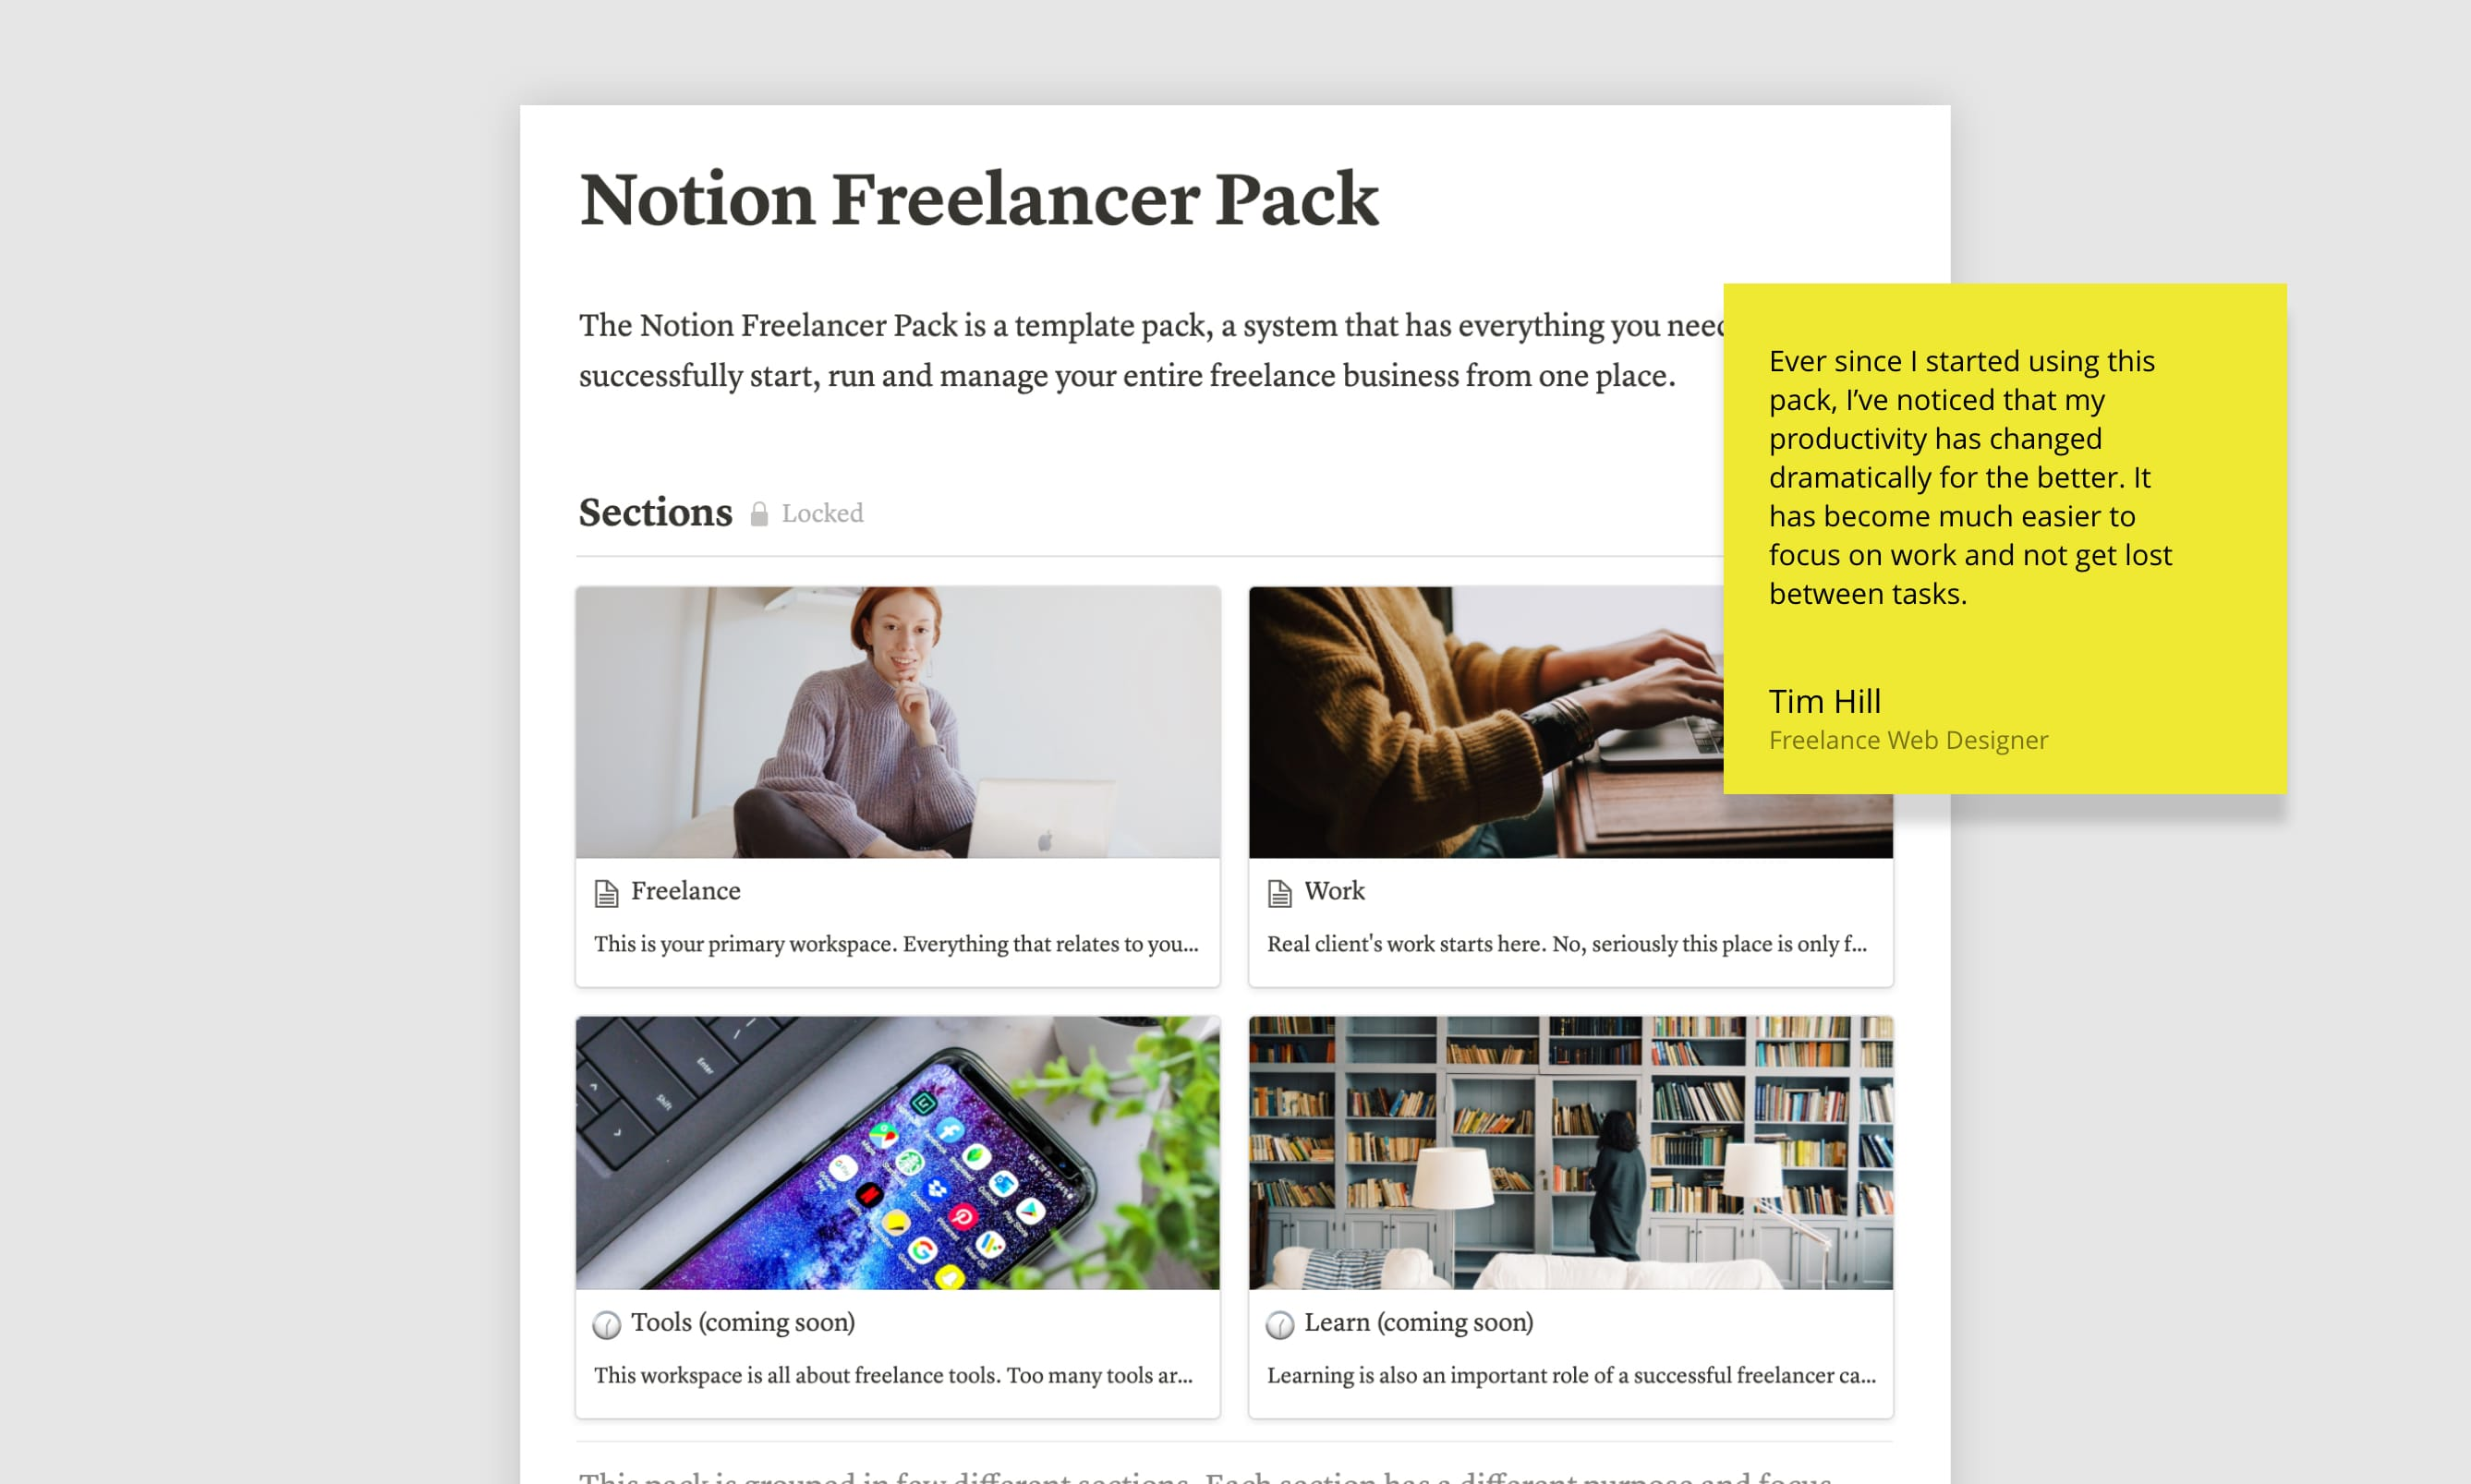 Manage your entire freelance business from one place